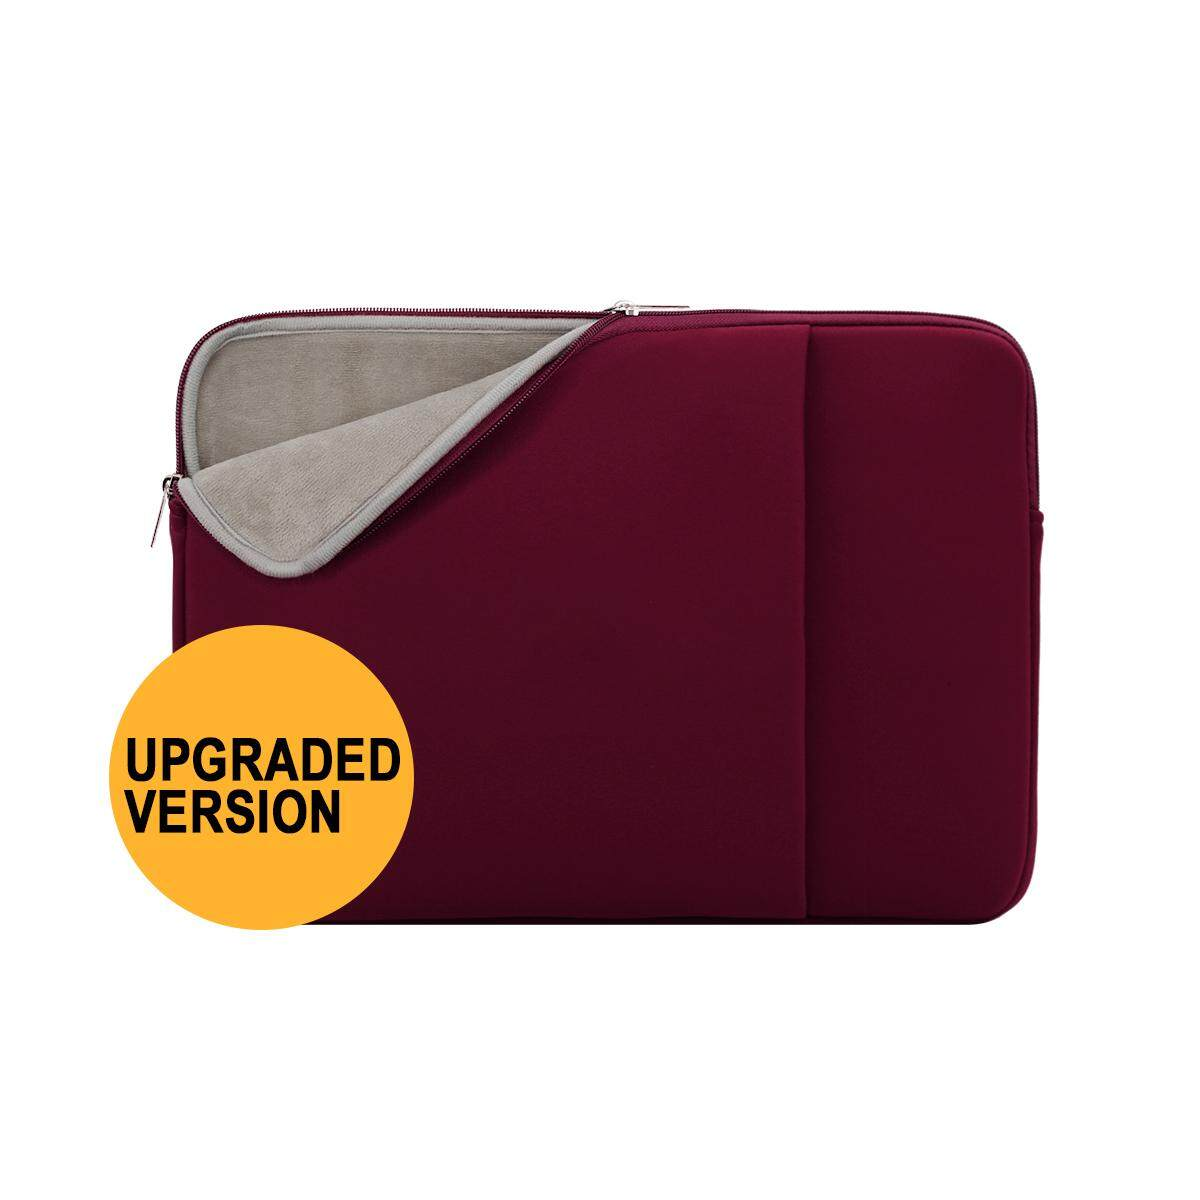 aa2537a0c7af 14 Inch Laptop Pouch Sleeve Front Pocket Soft Padded Carrying Bag